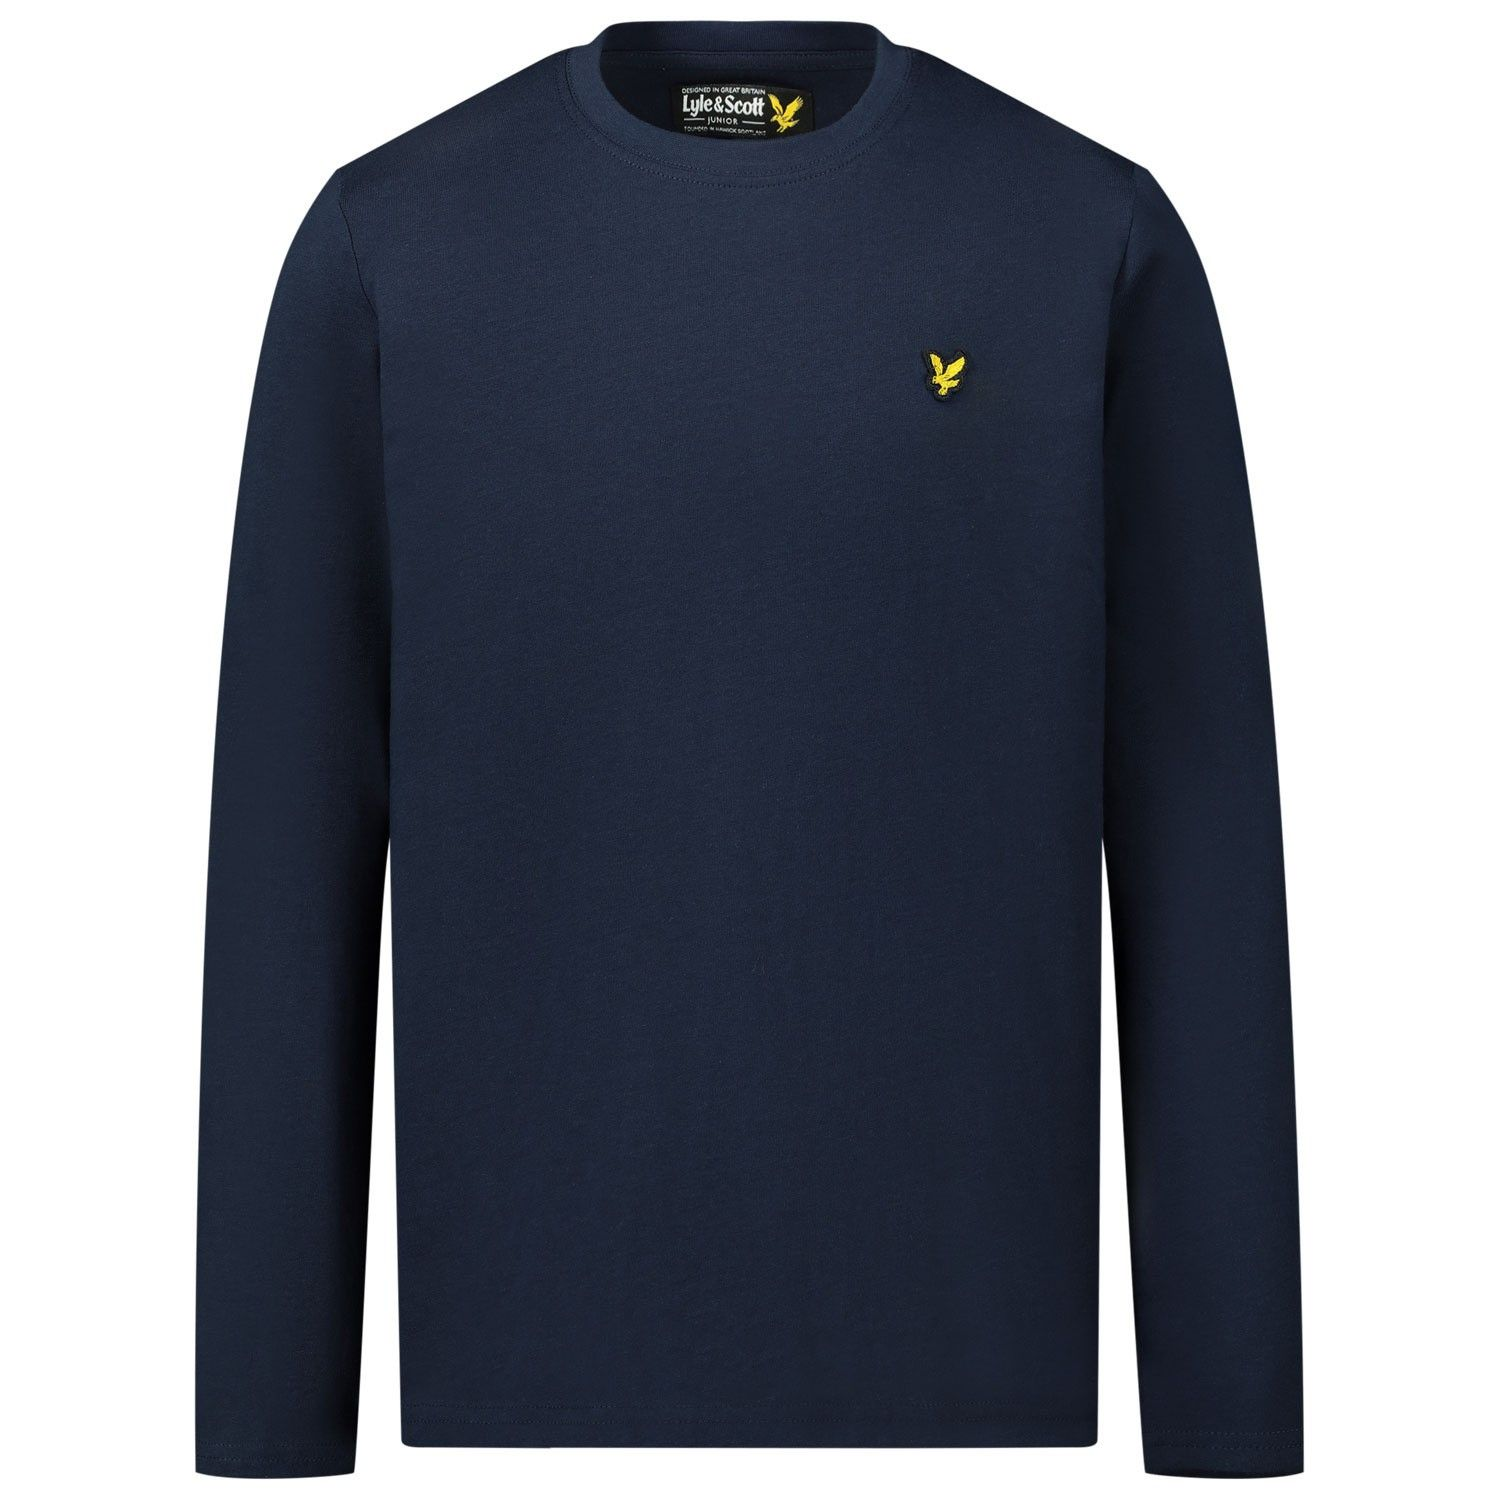 Picture of Lyle & Scott LSC0056 kids t-shirt navy